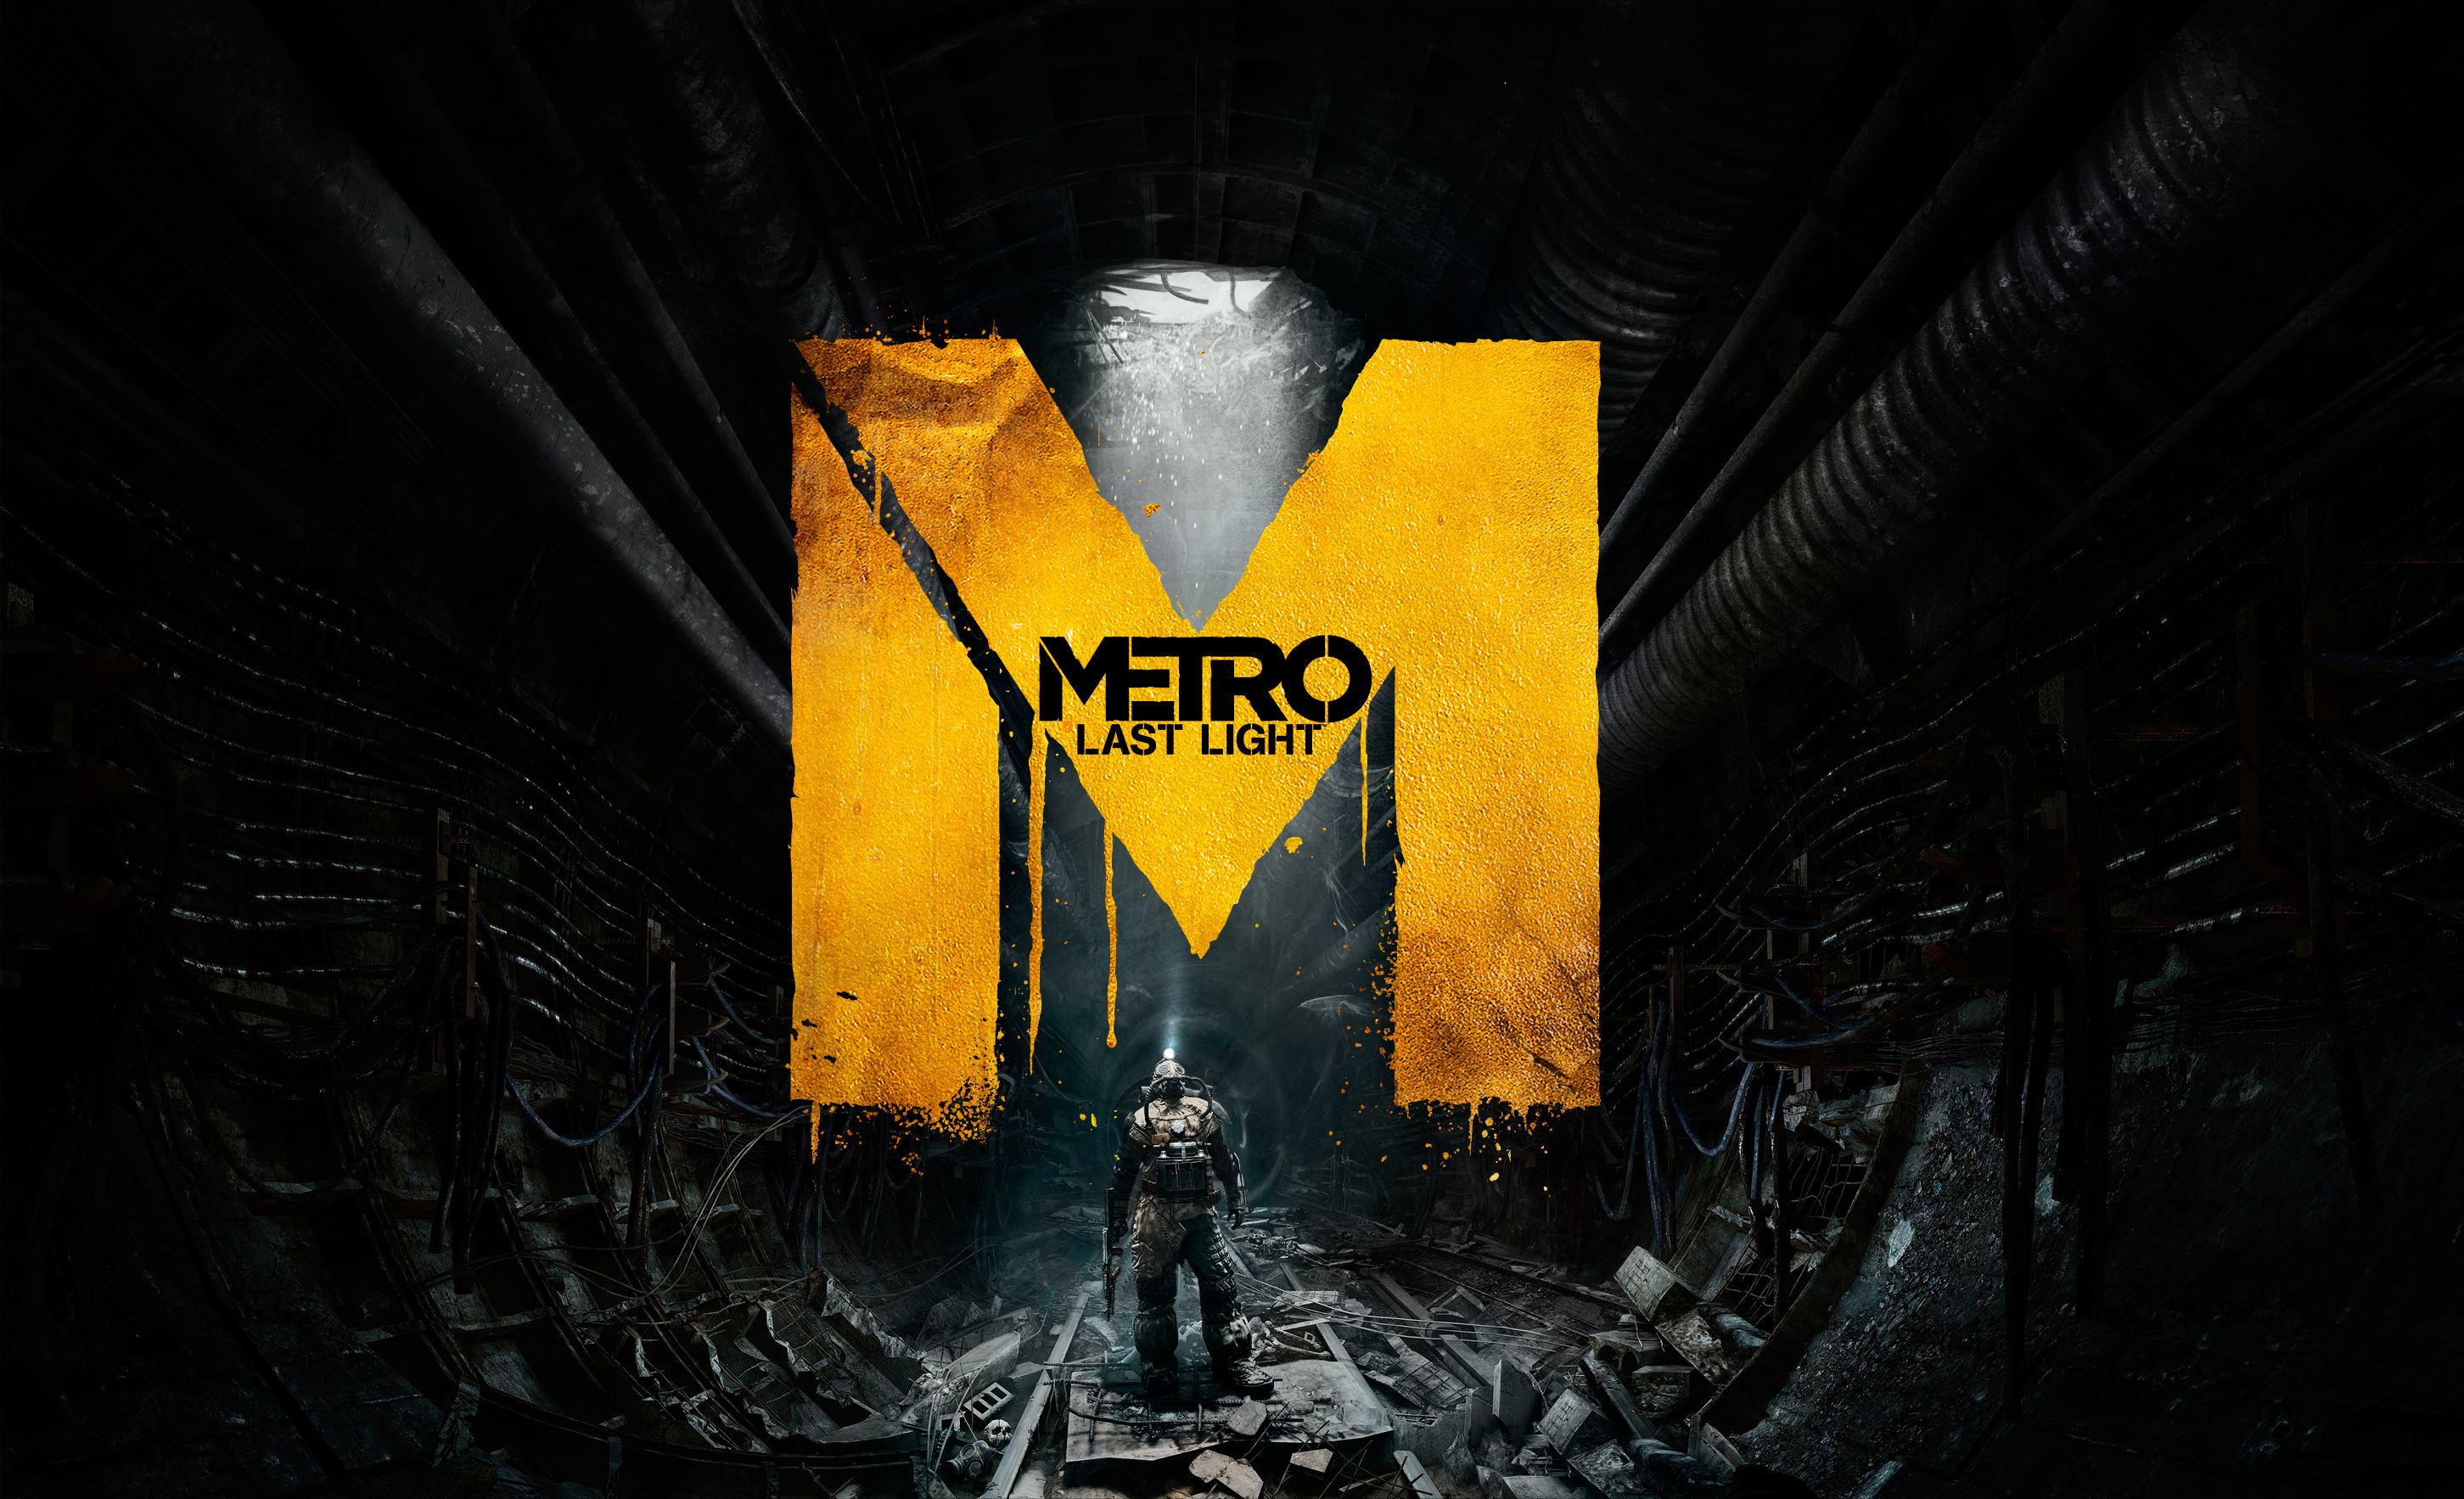 Metro Last Light Review: Post-Apocalyptia Never Looked So Good